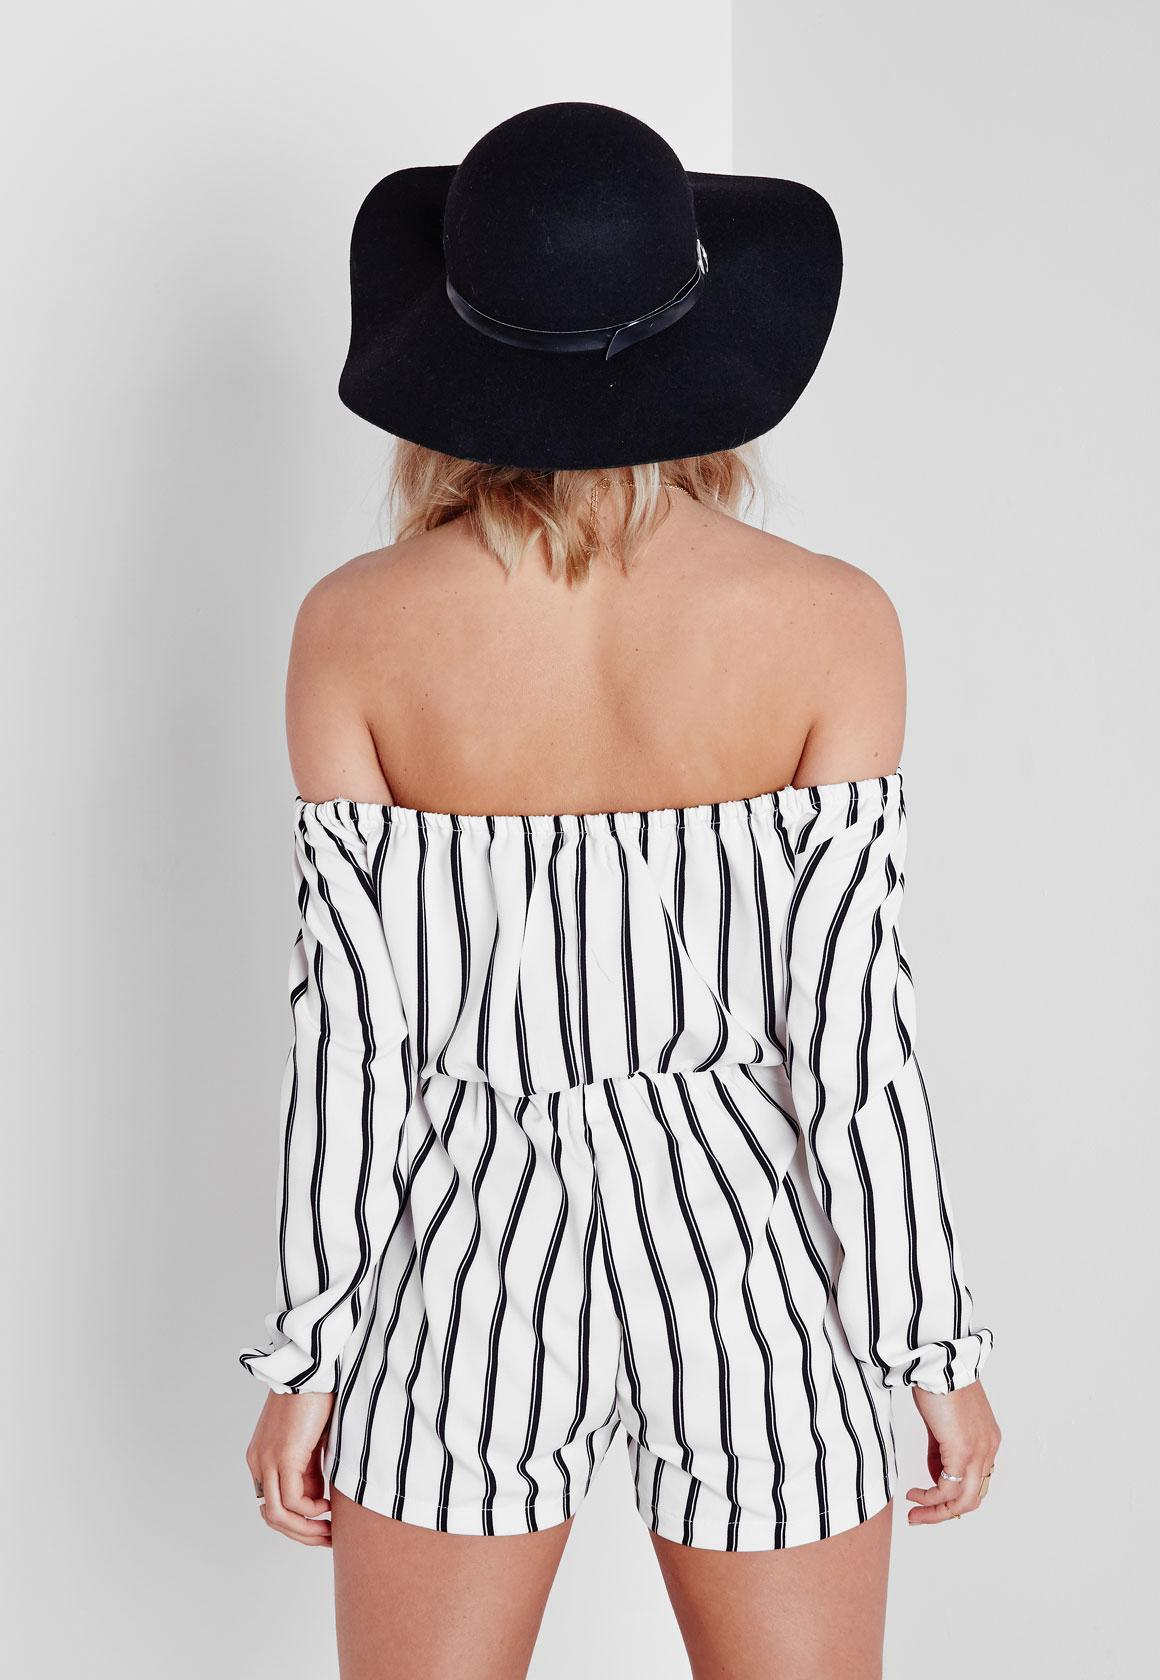 a6a470ff17f Lyst - Missguided White Striped Bardot Playsuit in White - Save 19%